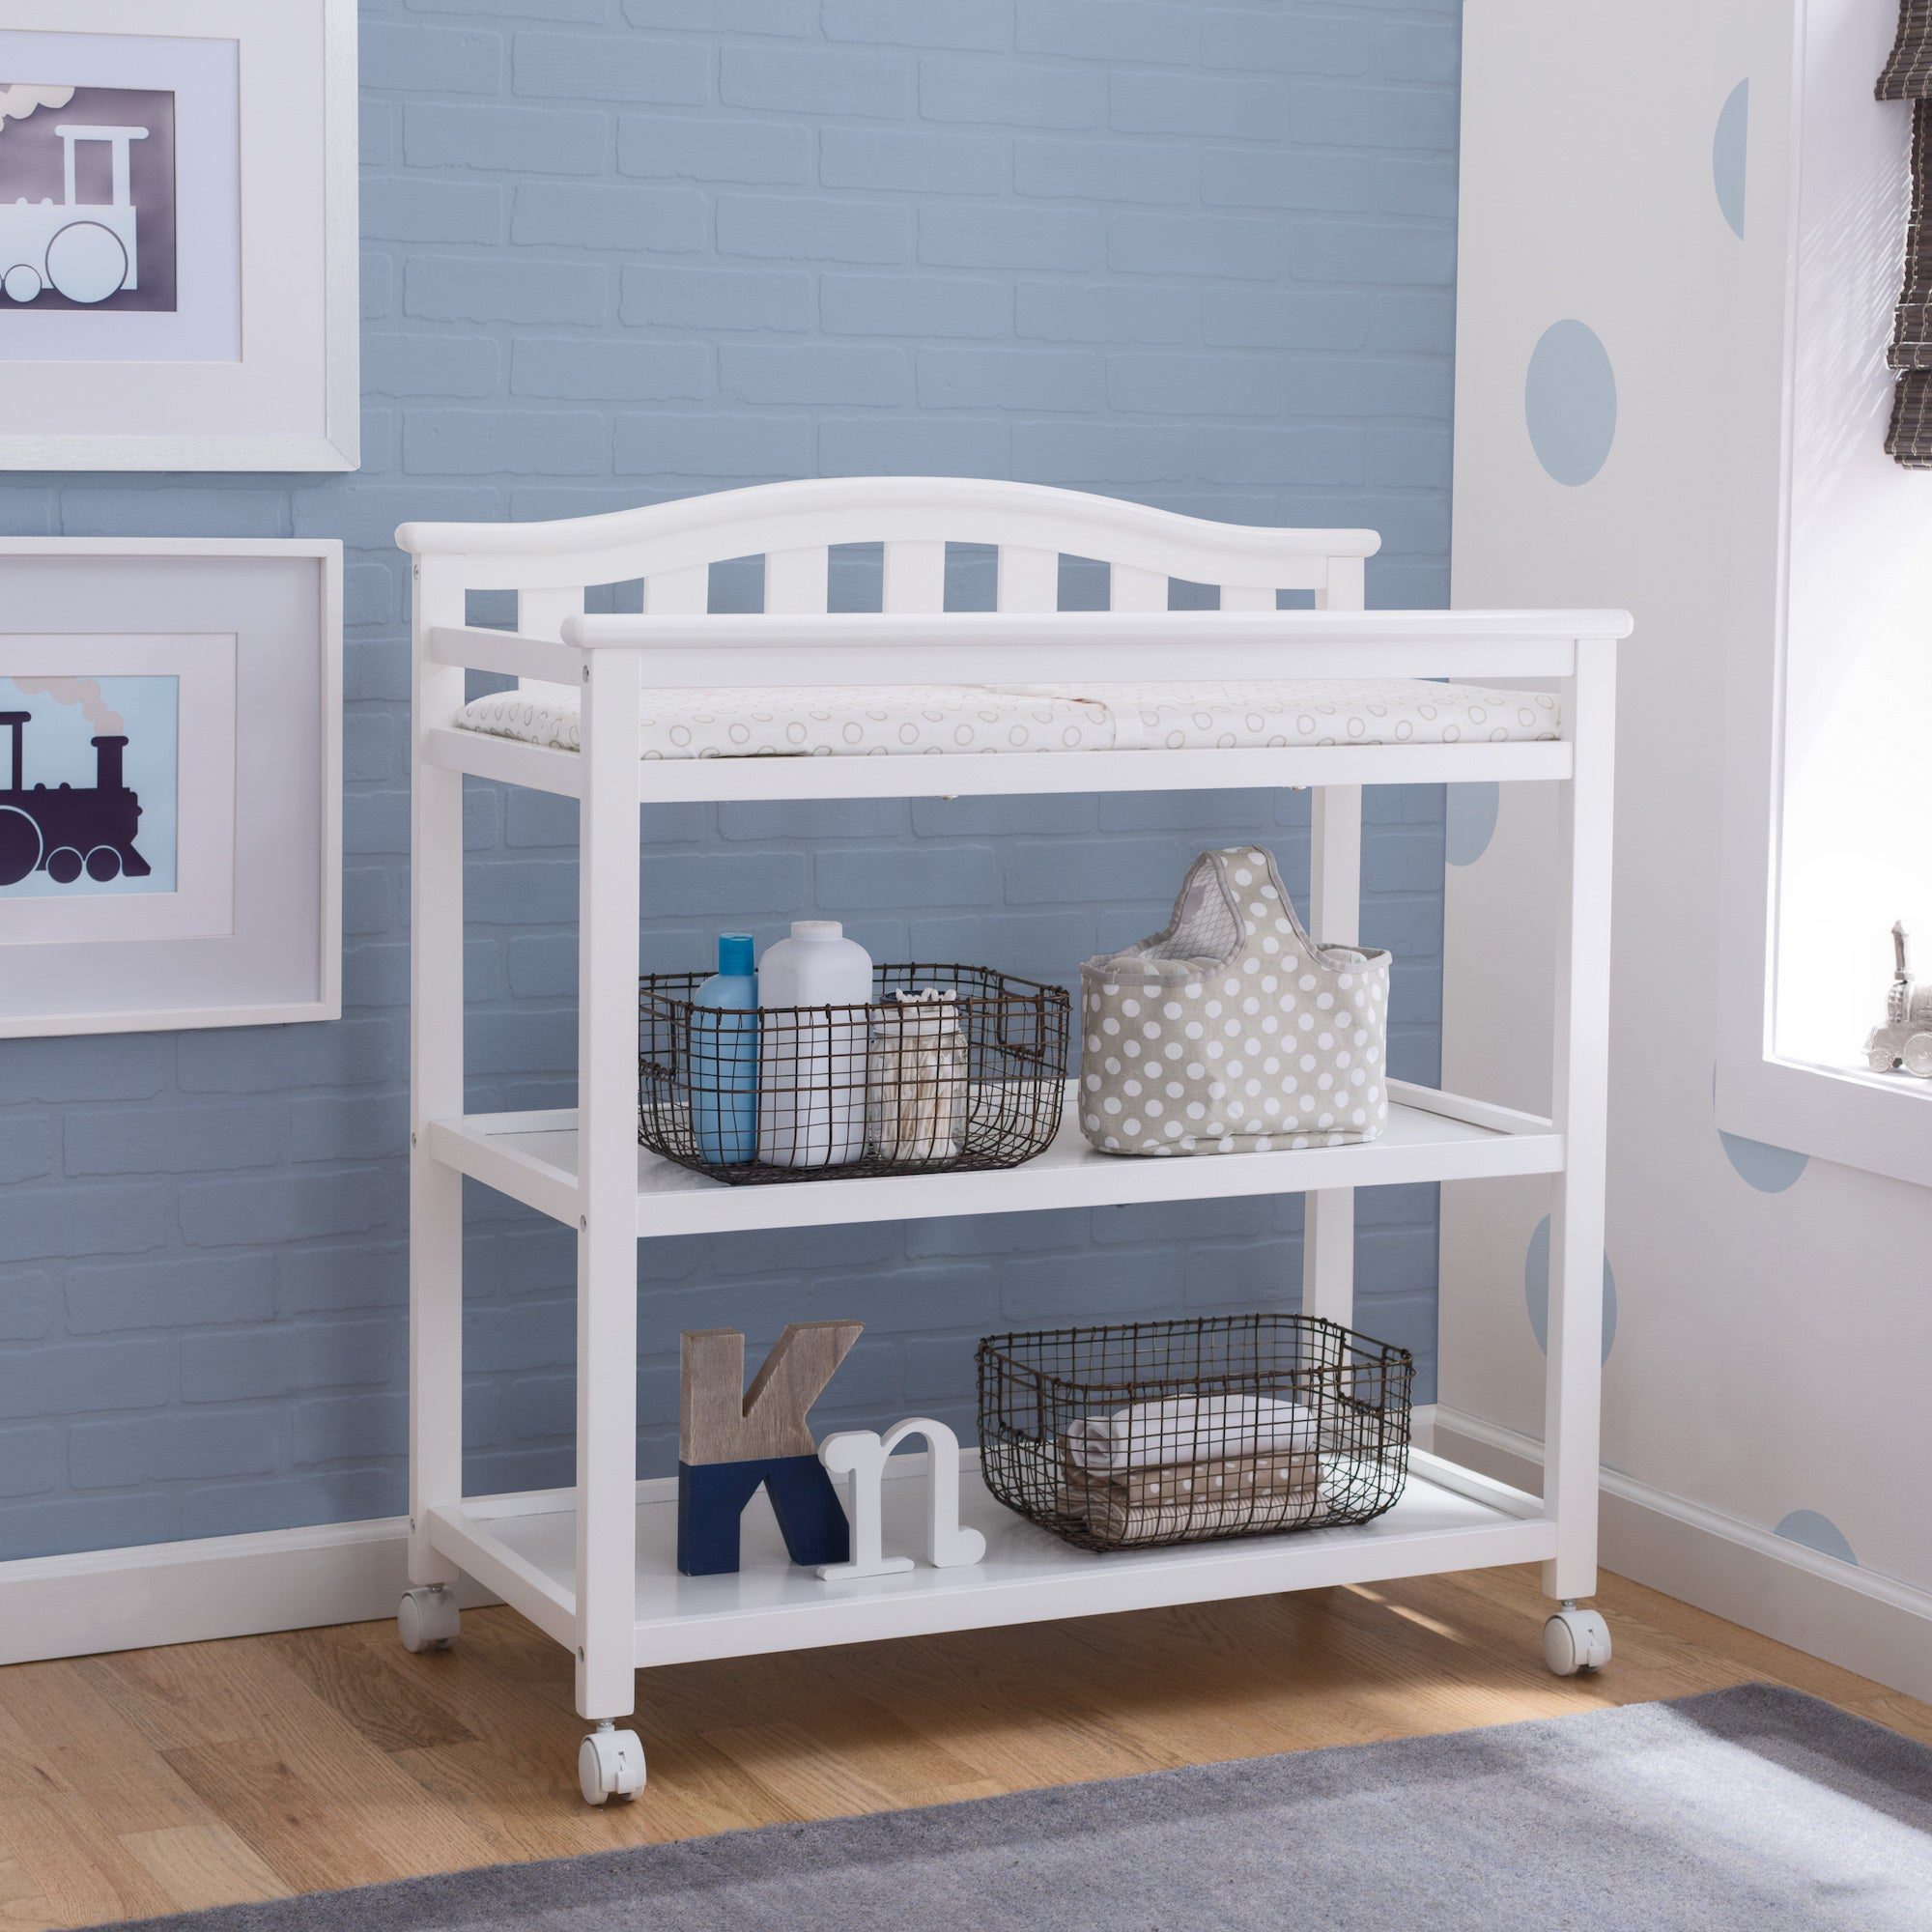 Delta Children Bell Top Changing Table with Casters, Bian...